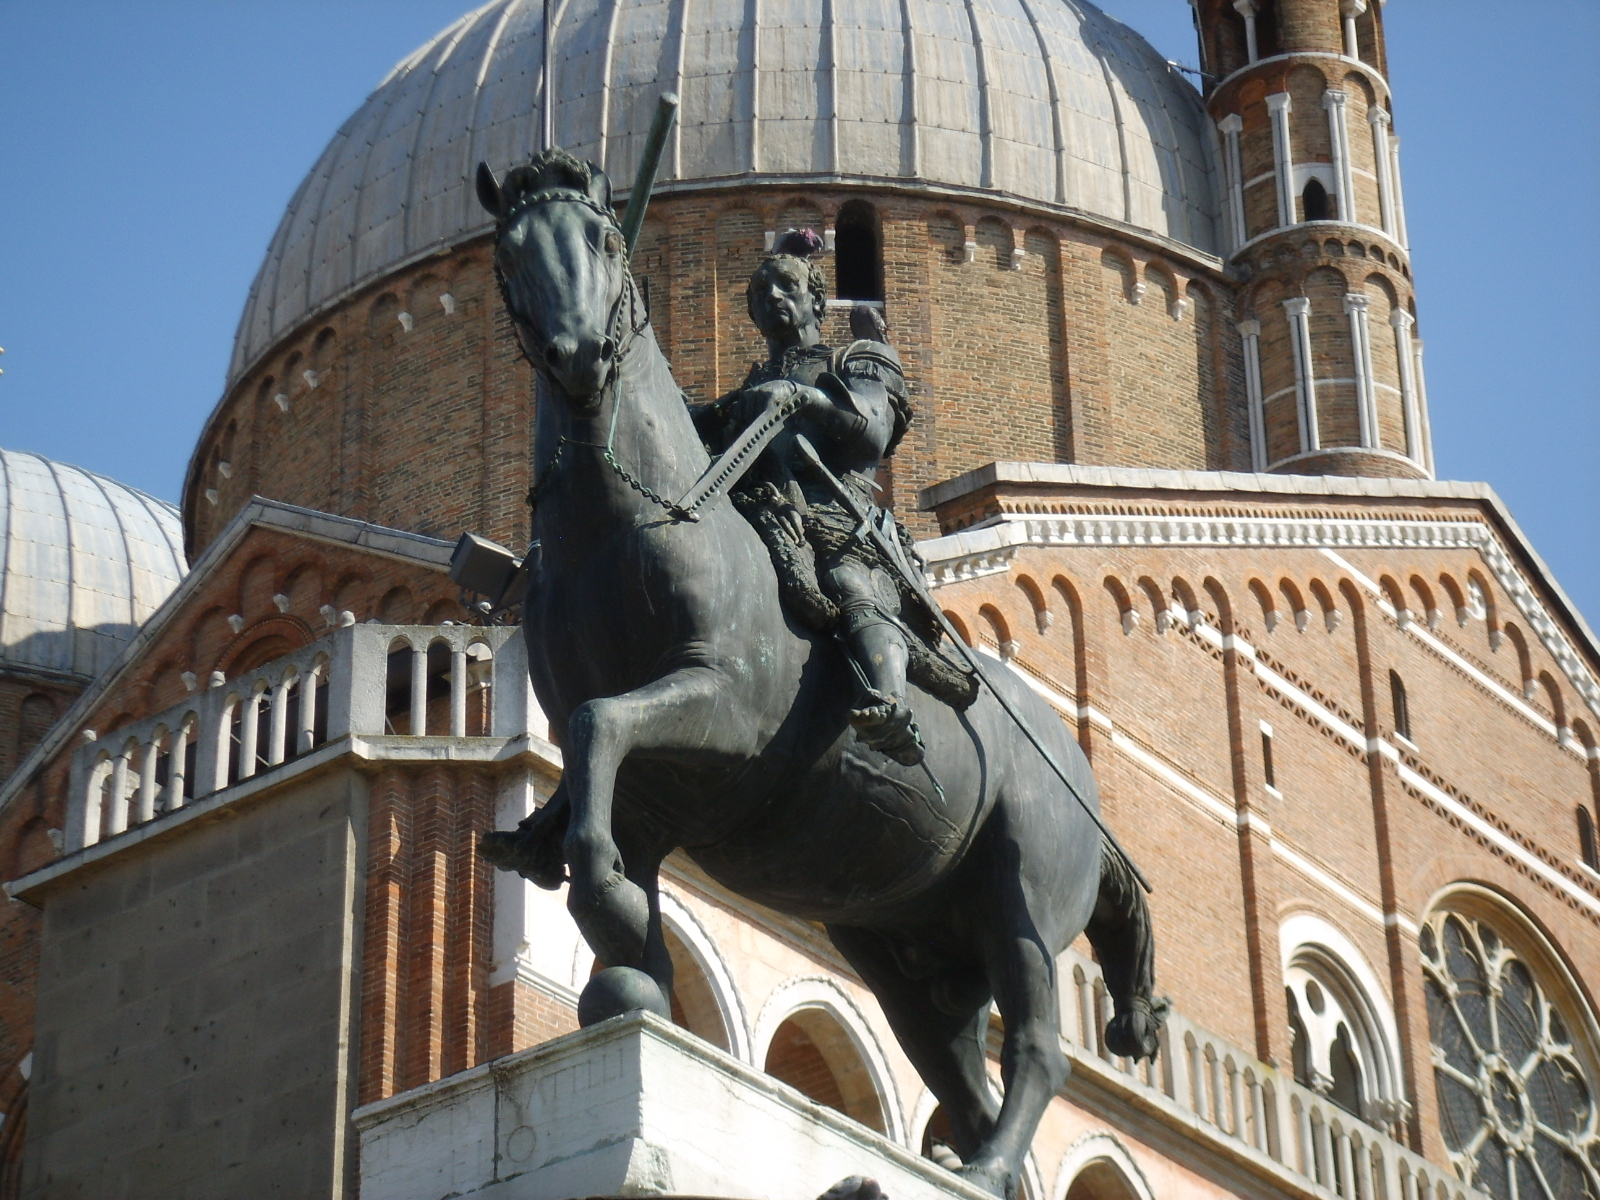 Description Donatello  Monumento equestre al Gattamelata 06 JPGDonatello Equestrian Statue Of Gattamelata